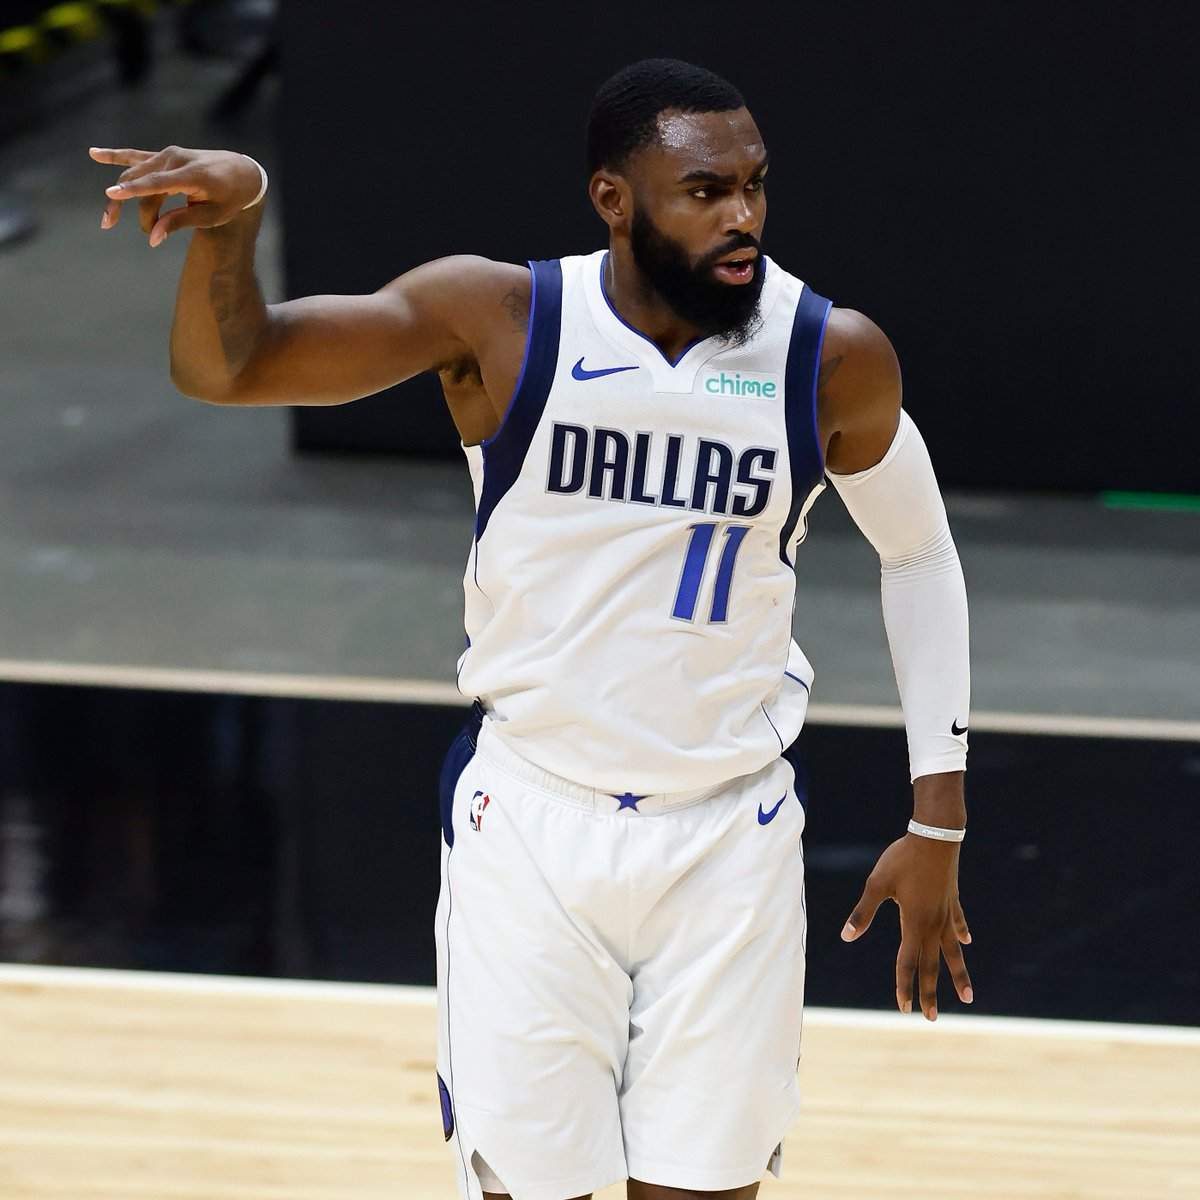 Tim Hardaway Jr. tied the @dallasmavs franchise record with a career-high 10 threes tonight.  The other two Mavericks to hit 10 threes are Wesley Matthews (Dec. 6, 2015) and George McCloud (Dec. 16, 1995). https://t.co/zzrOGOOEB0